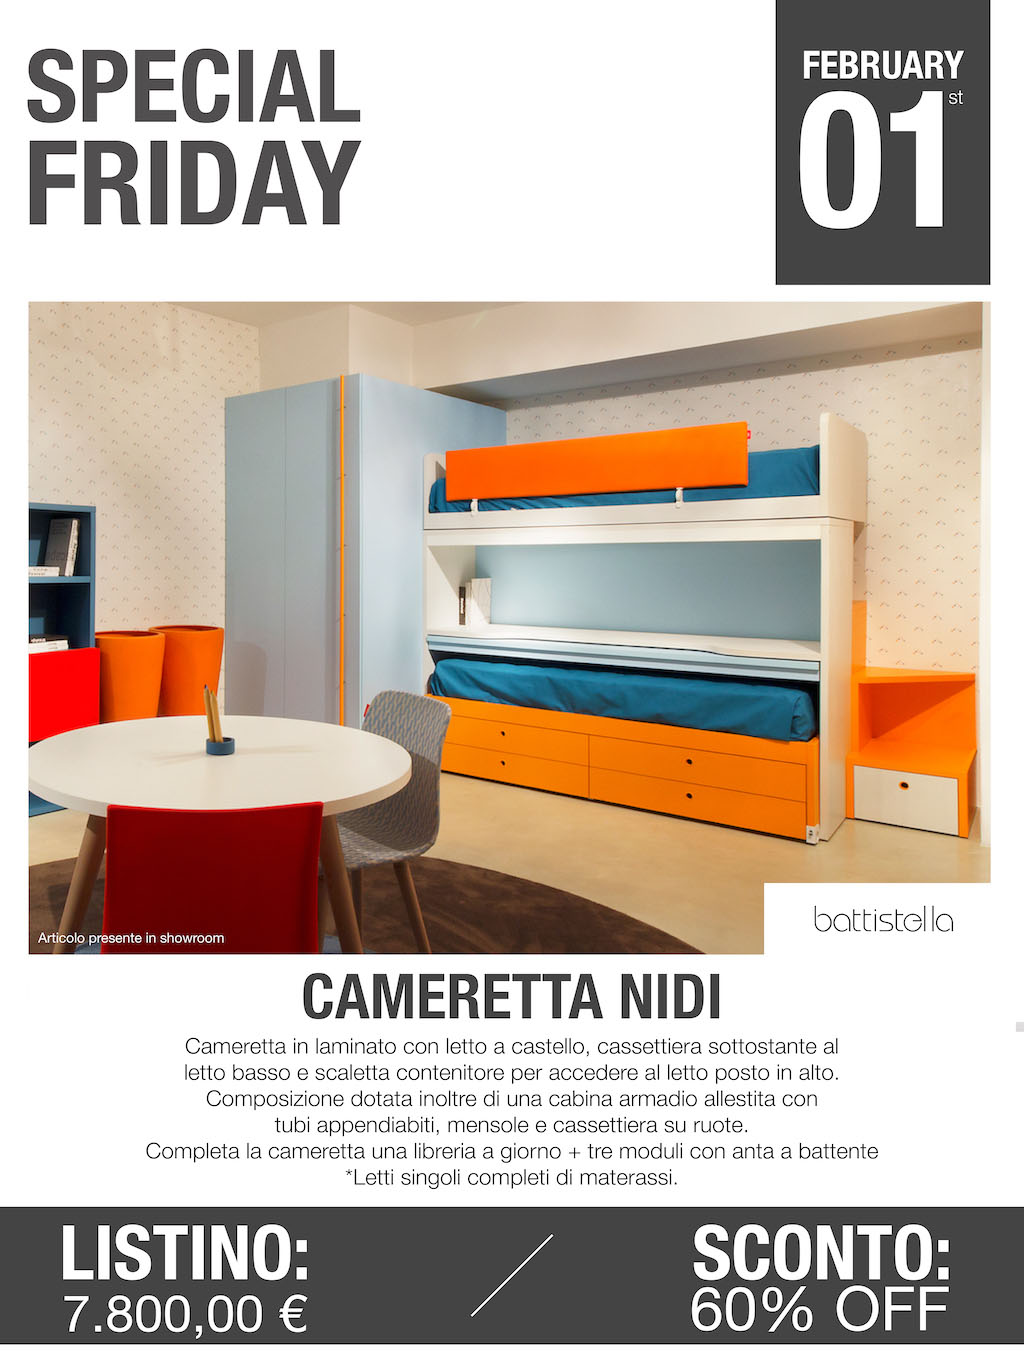 cameretta nidi battistella Special Friday